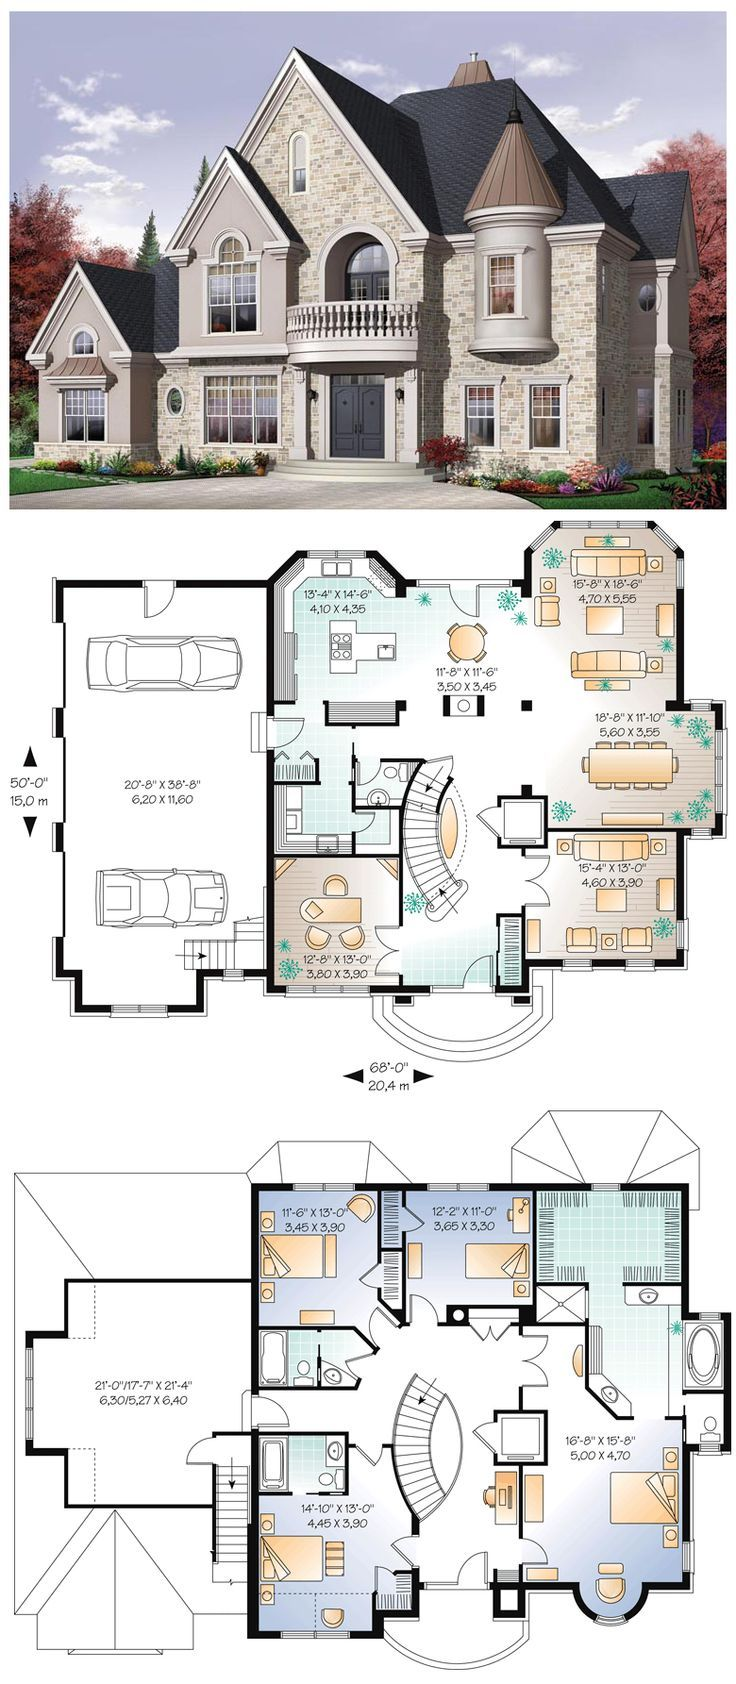 Castle House Plans With Turrets: Pin By Harshitha Chandrashekhar Rai On Architecture